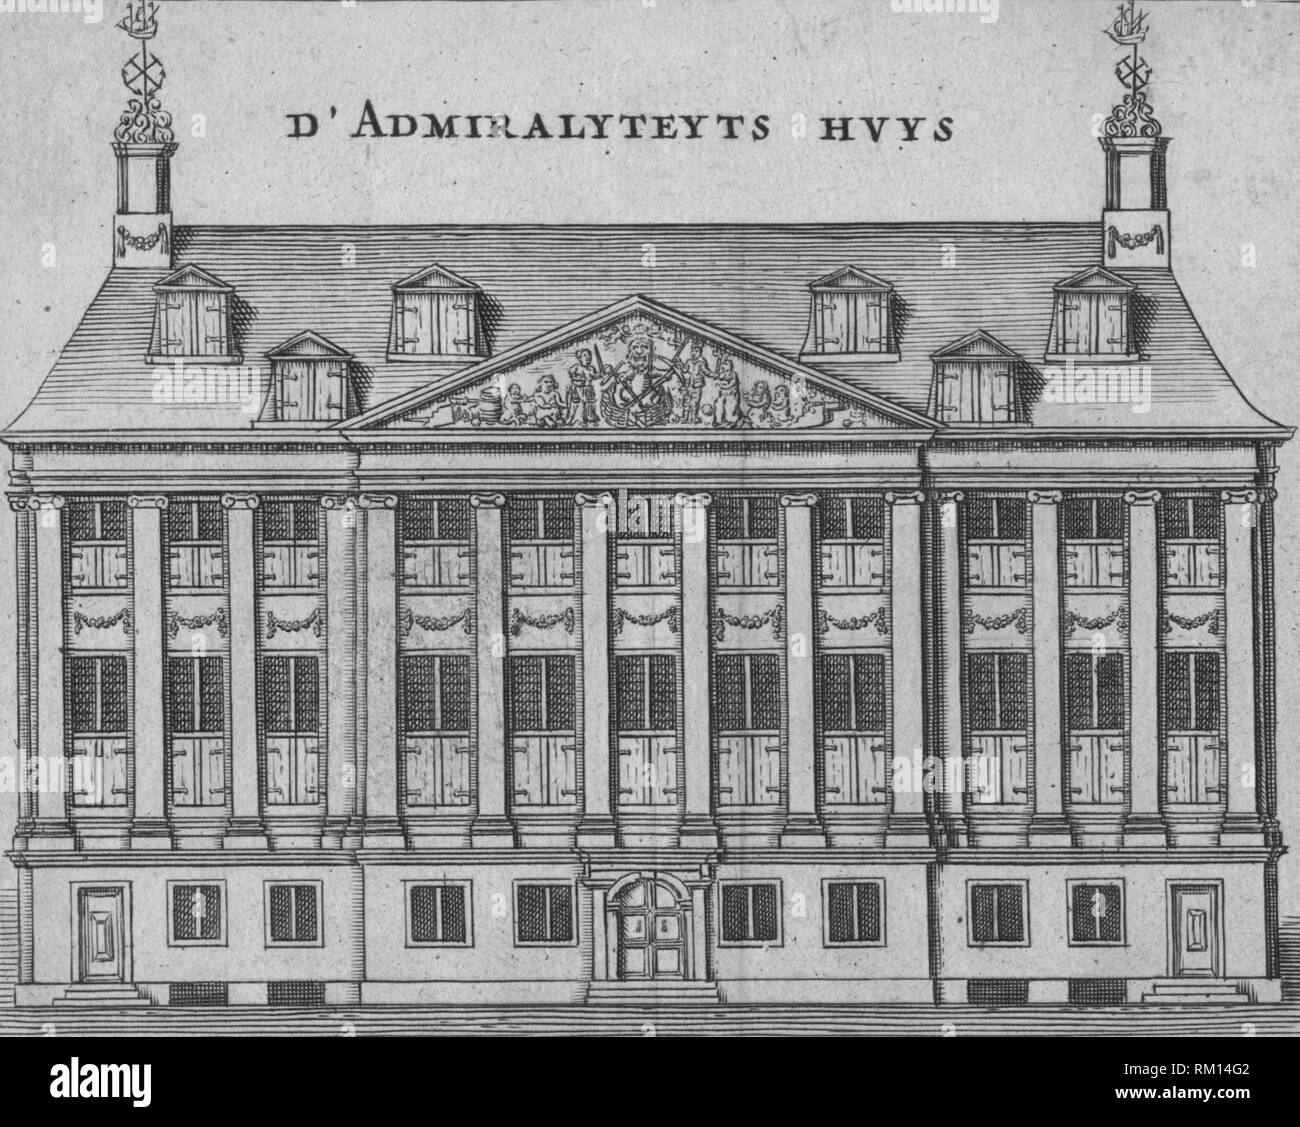 'D'Admiralyteyts Huys', late 17th-early 18th century. Admiralty House, seat of the  the Dutch East India Company (Vereenigde Oostindische Compagnie - VOC) in Amsterdam, Netherlands. The building dates from 1656, and was designed by Daniël Stalpaert. - Stock Image